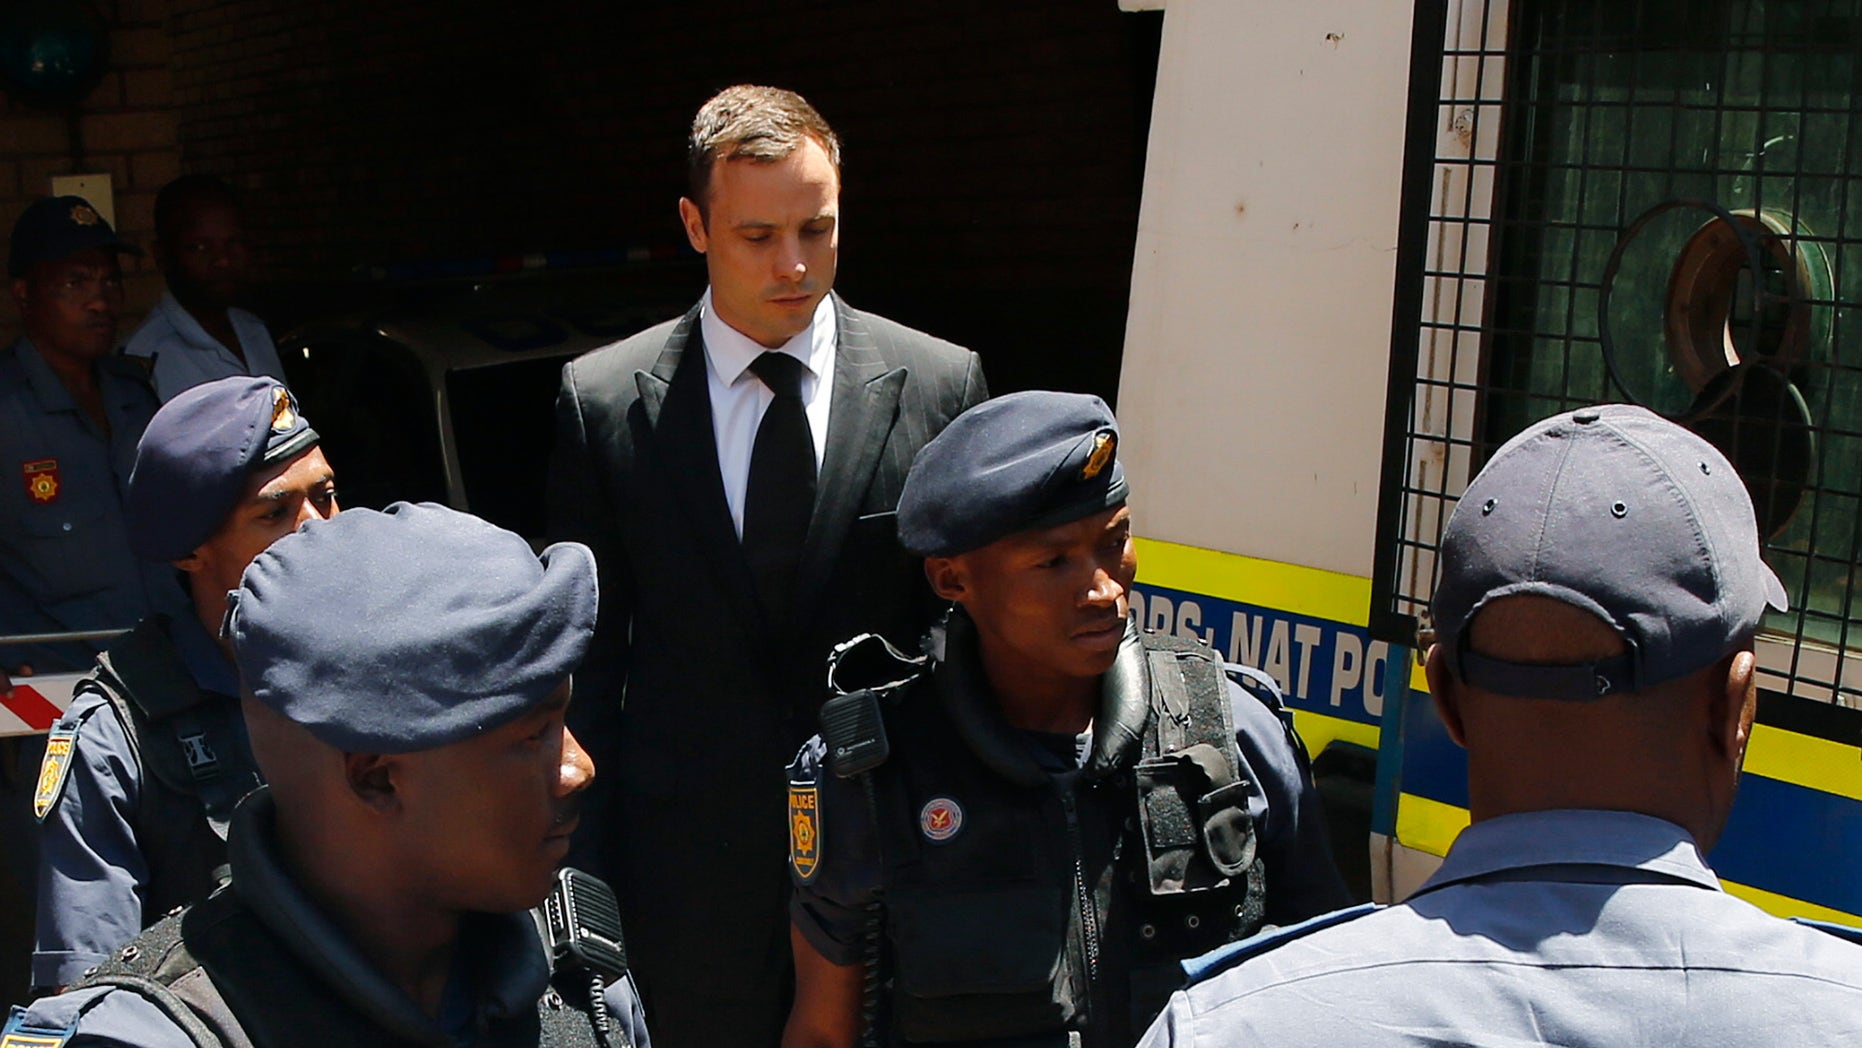 October 21, 2014 - South African Olympic and Paralympic sprinter Oscar Pistorius is escorted to a police van after his sentencing in Pretoria.